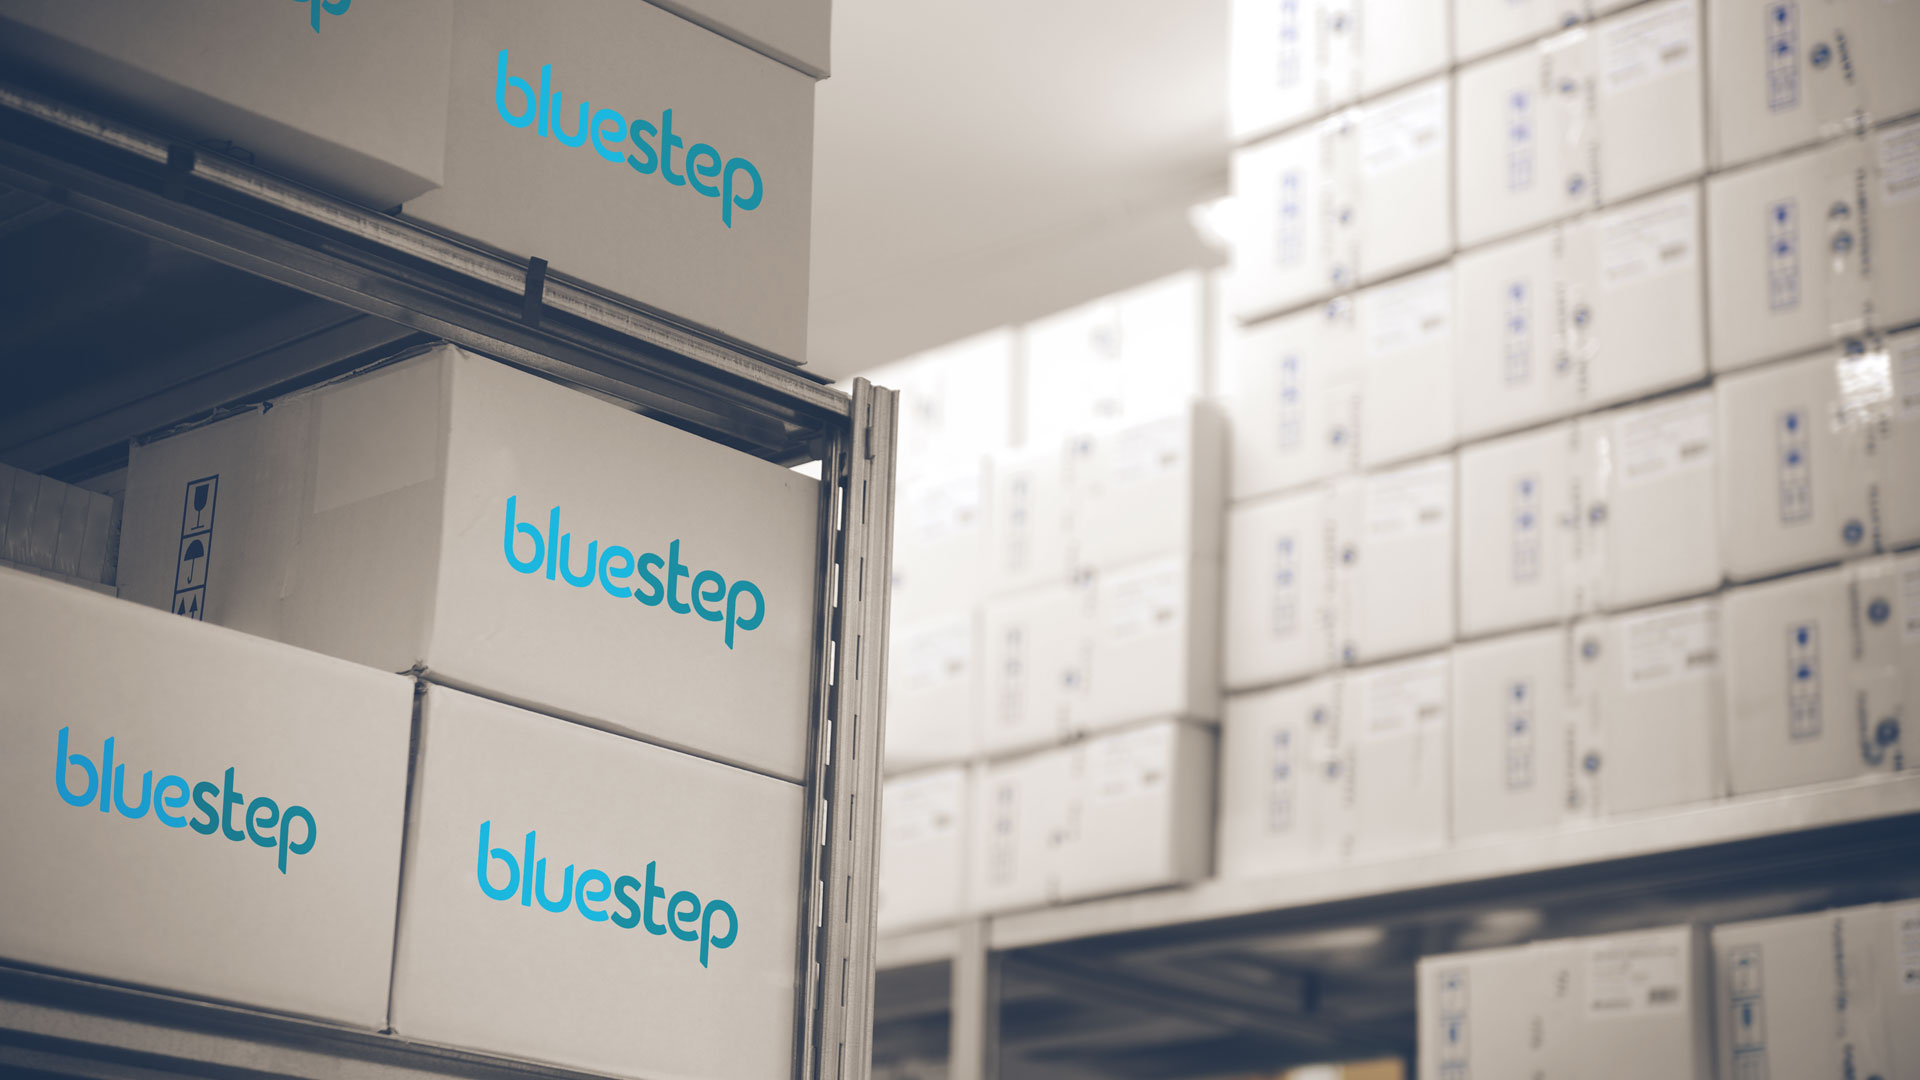 An image showing the Bluestep Warehouse based in Blisworth, Northampton